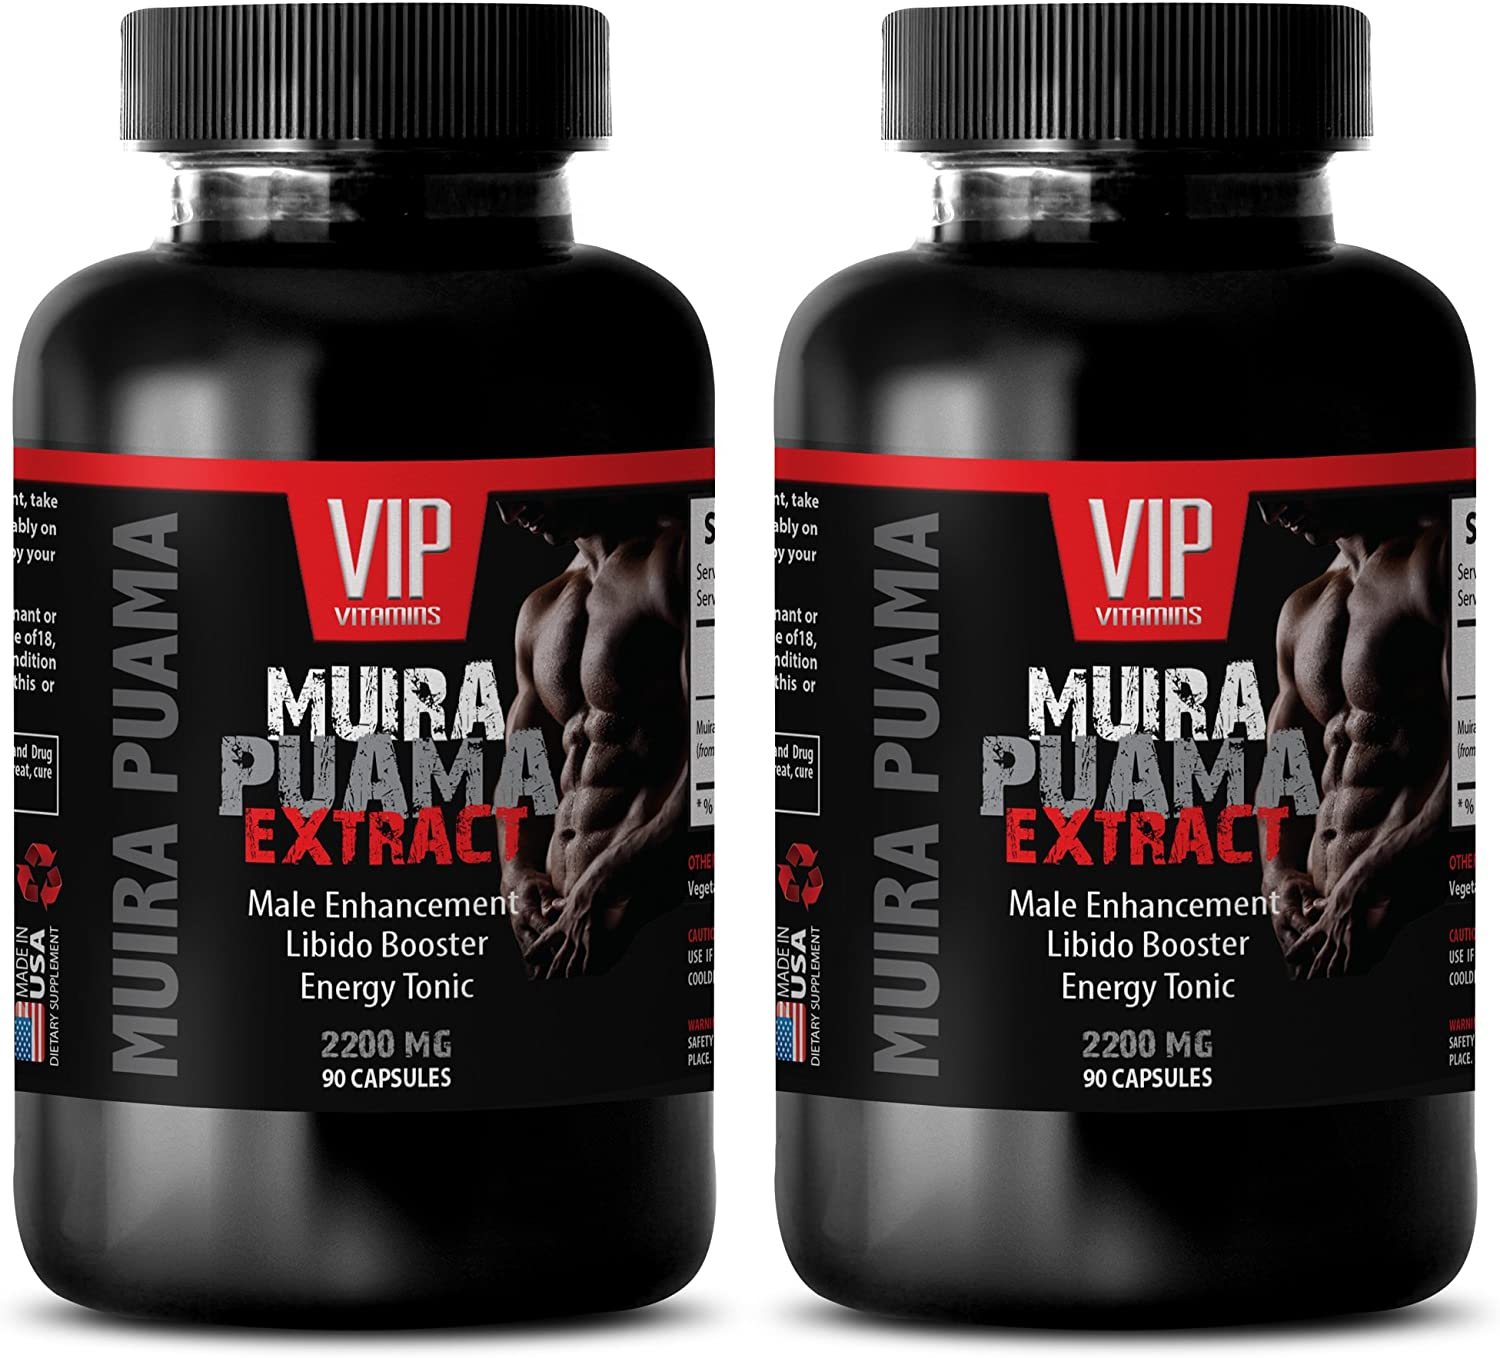 Enhancement Pills All Natural - Muira PUAMA - Male Enhancement - LIBIDO Booster - Energy Tonic - Brain Memory Booster - 2 Bottles (180 Capsules)